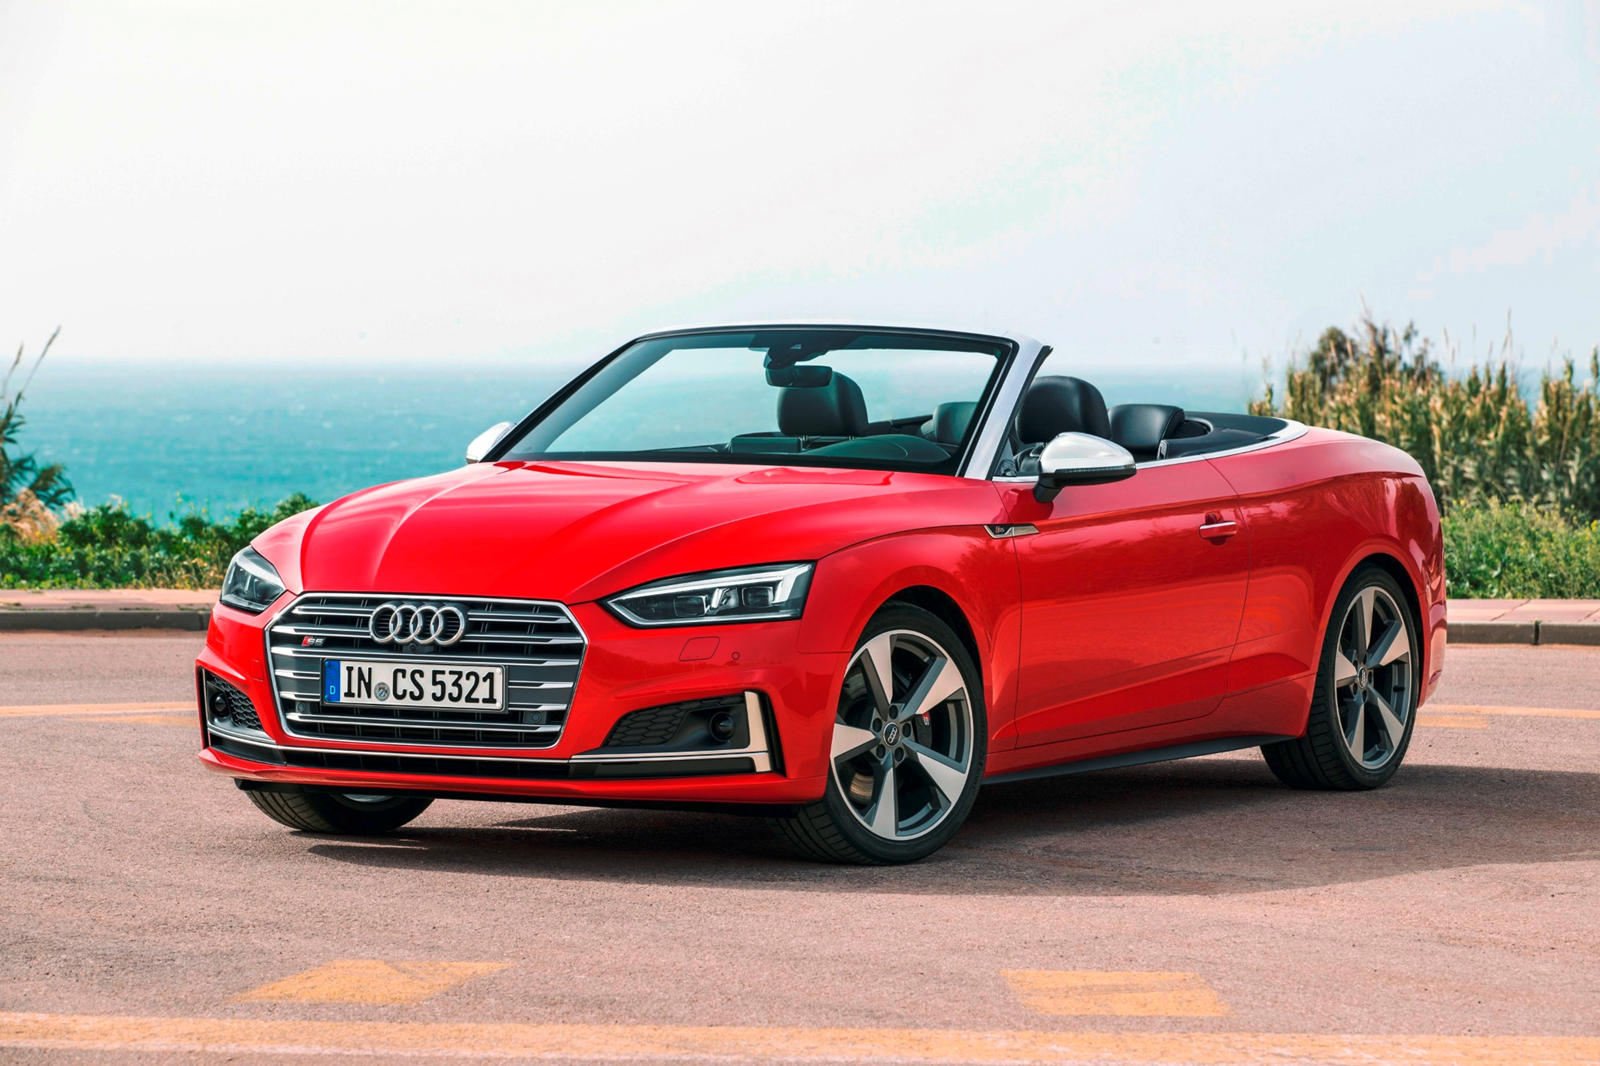 2021 Audi S5 Convertible Review Trims Specs Price New Interior Features Exterior Design And Specifications Carbuzz